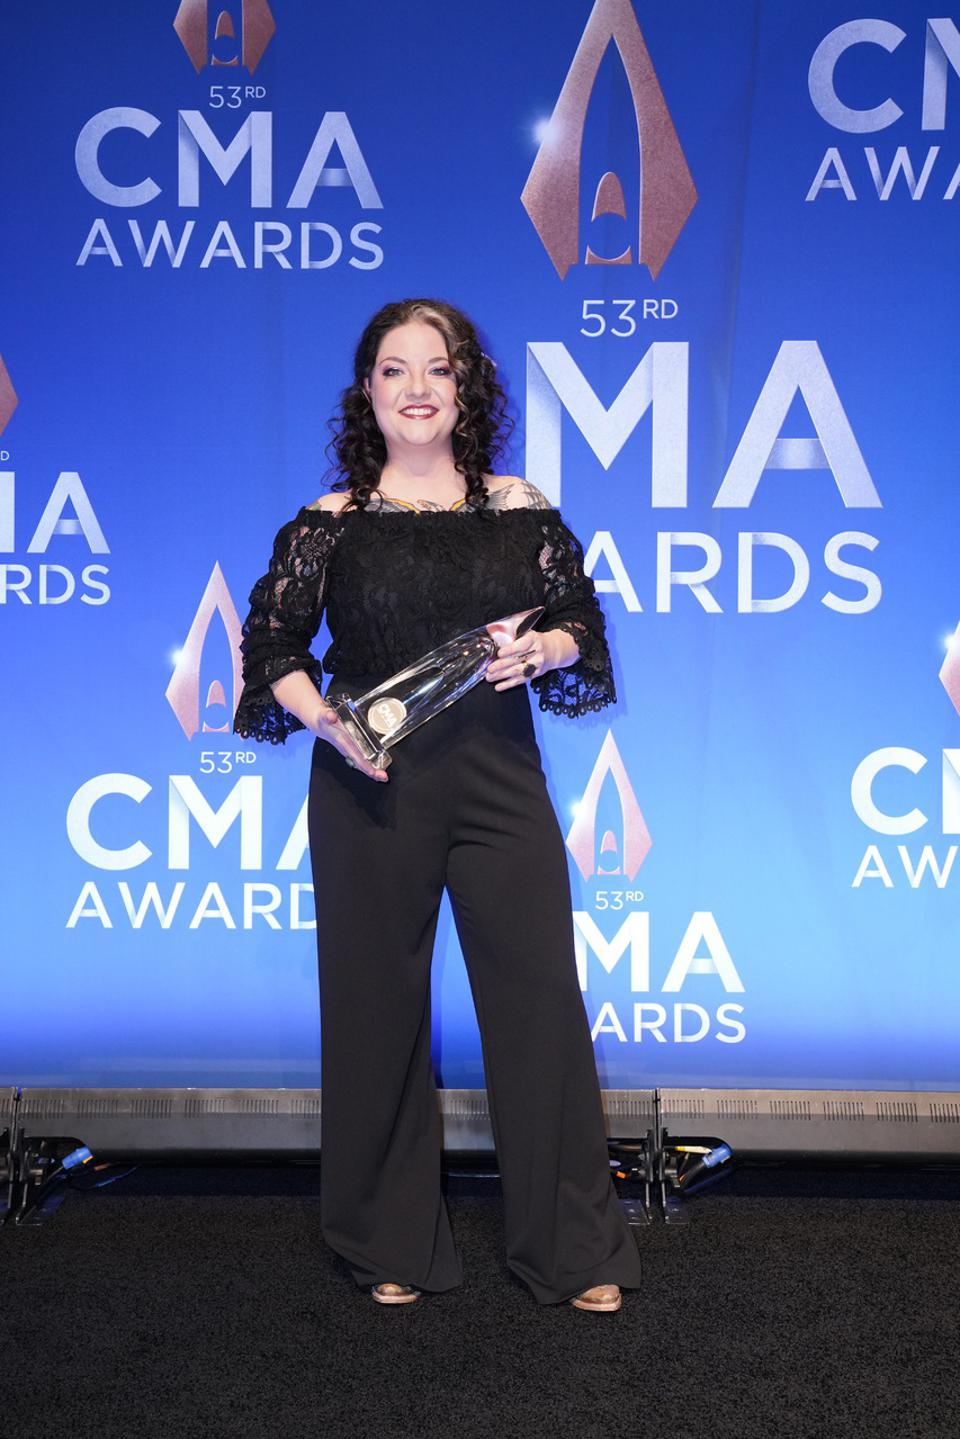 Ashley McBryde accepts her 2019 CMA New Artist of the Year trophy in Ariat boots.